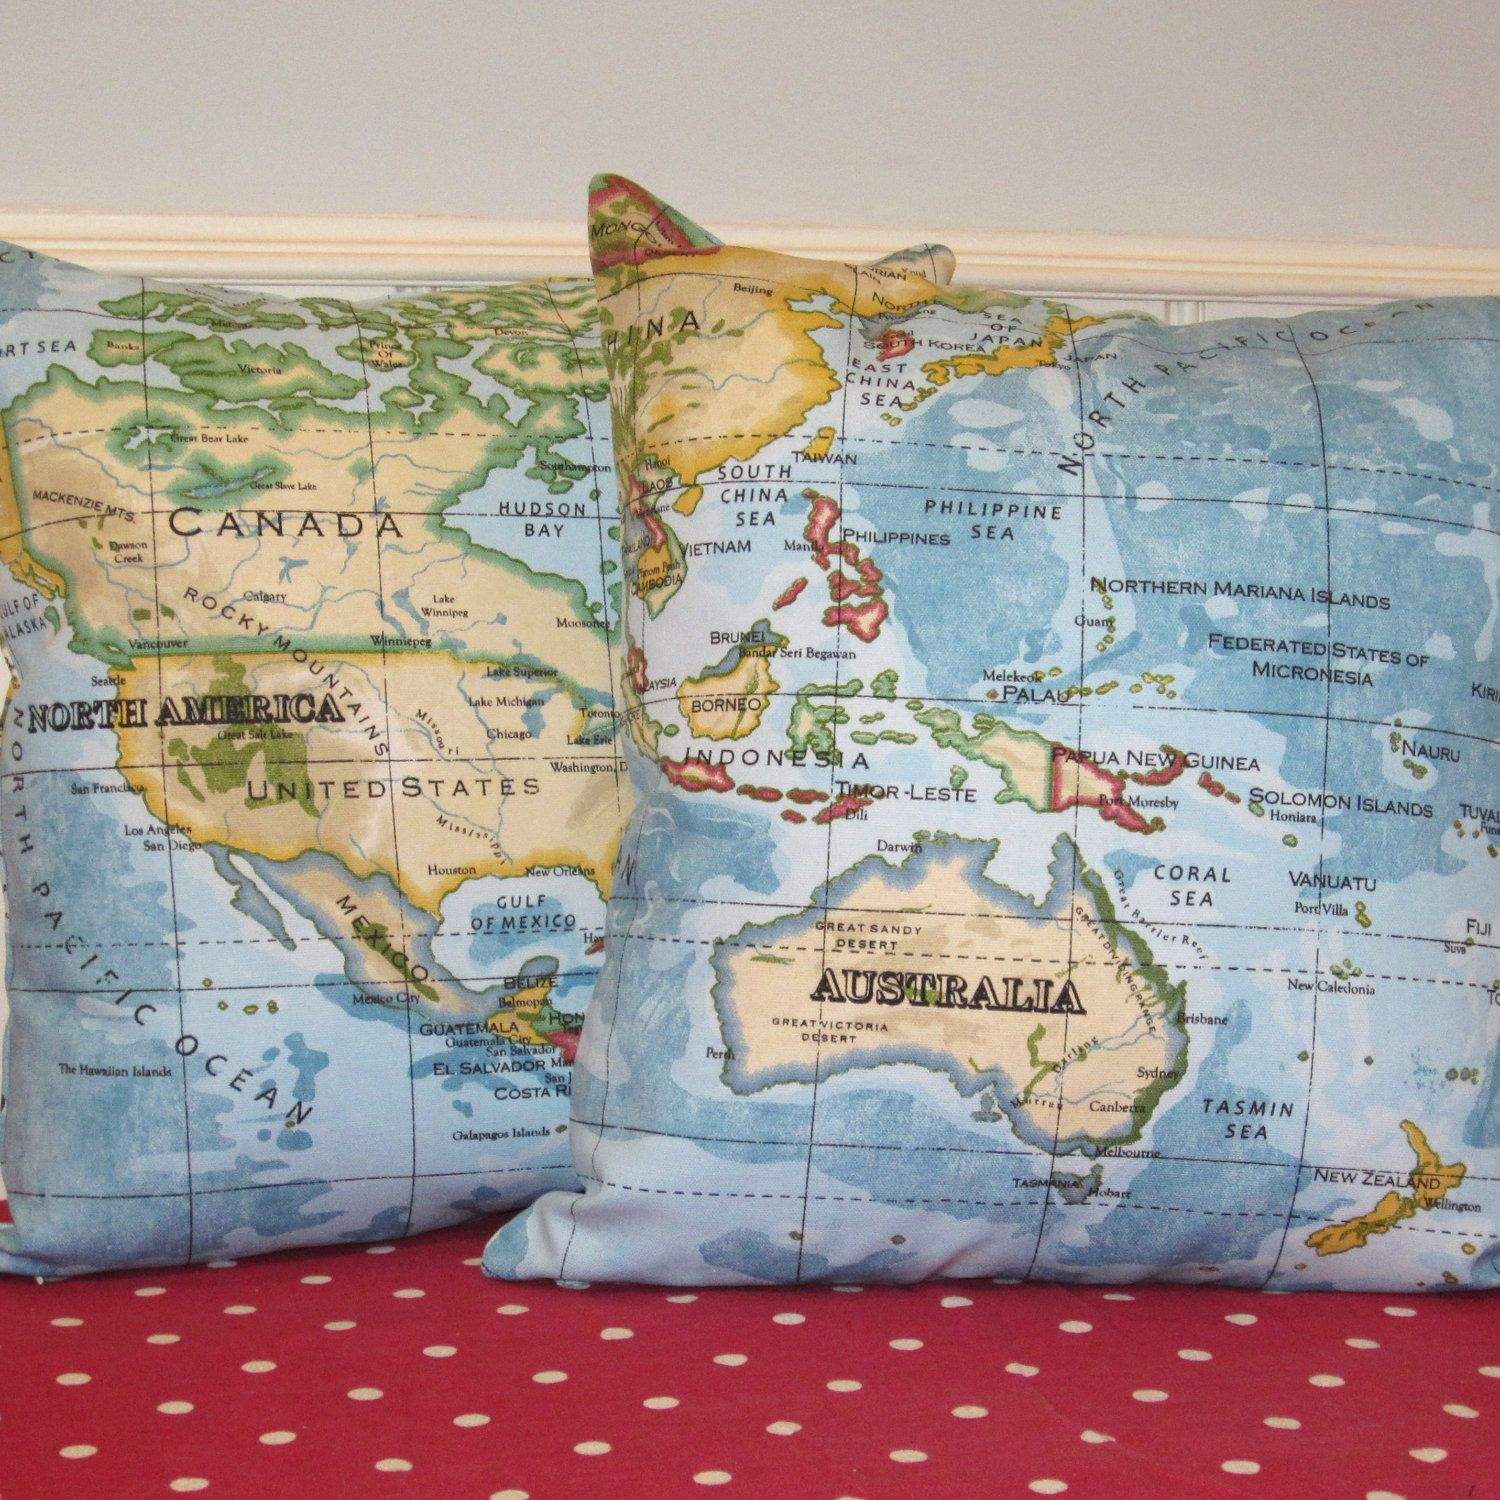 Set of two pillow cushion covers atlas world map print blue on two world map print pillows cushion covers blue atlas fabric on front and back 16 x 16 inch sciox Gallery